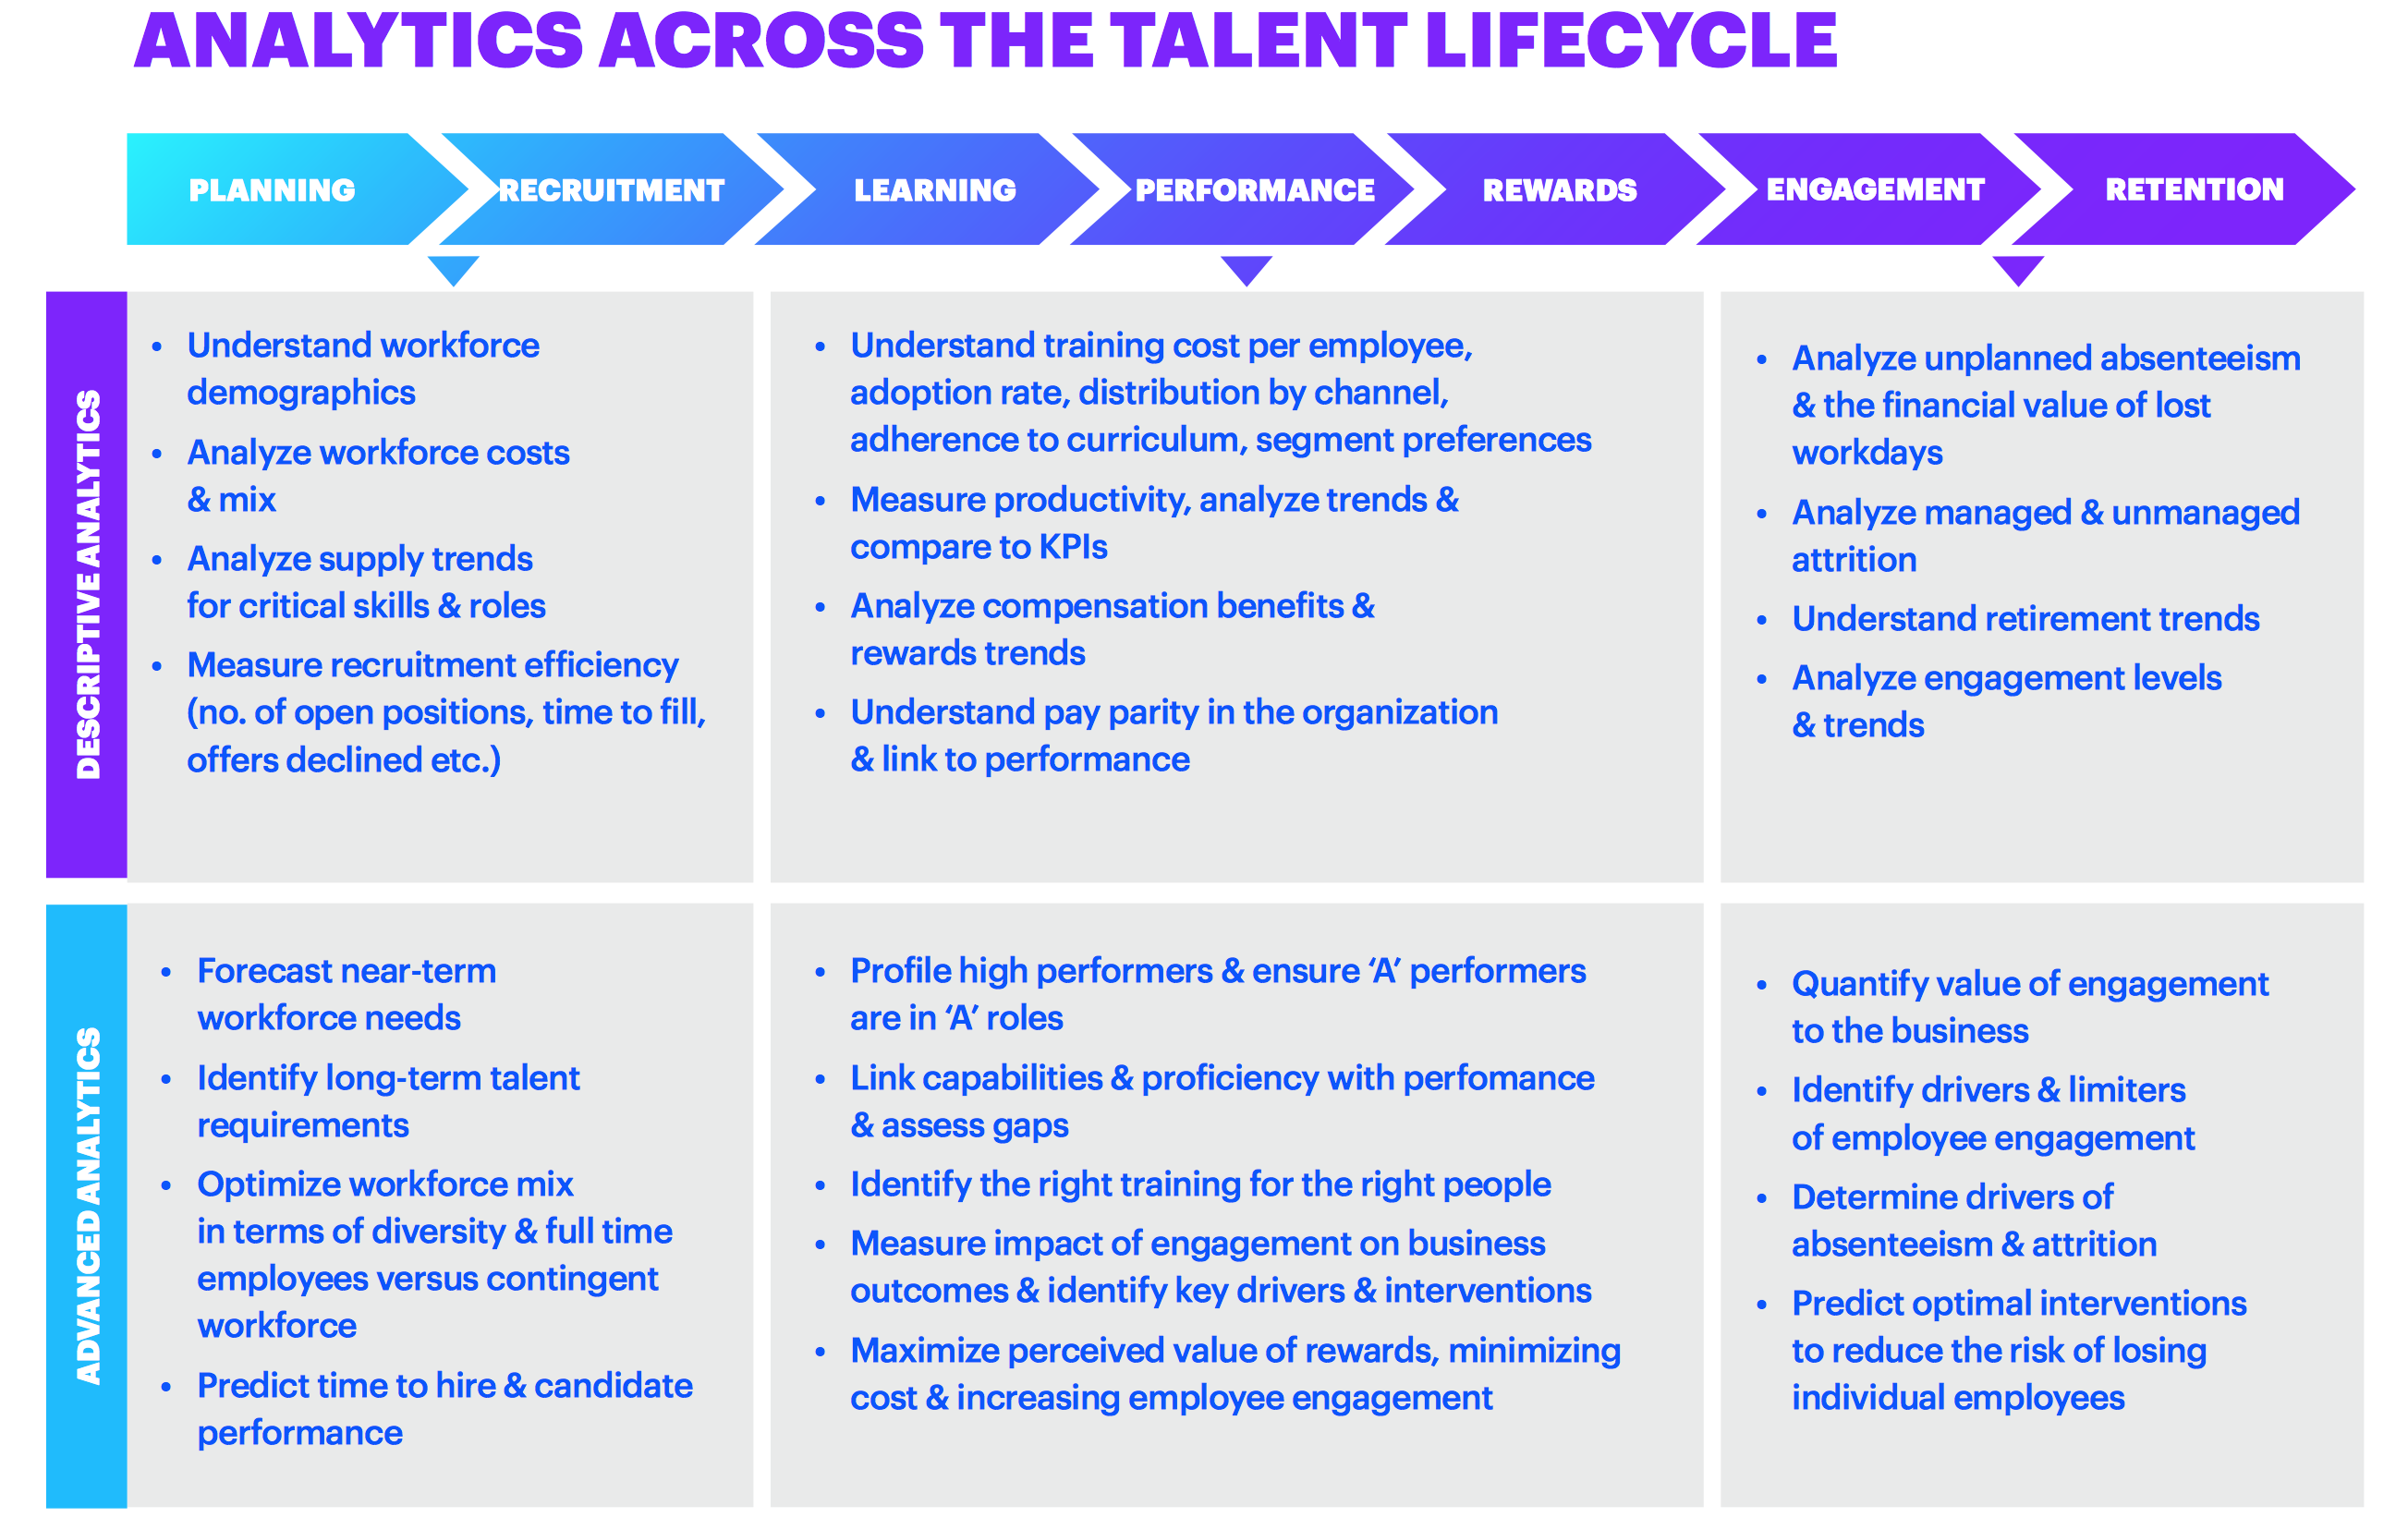 Analytics across the talent lifecycle